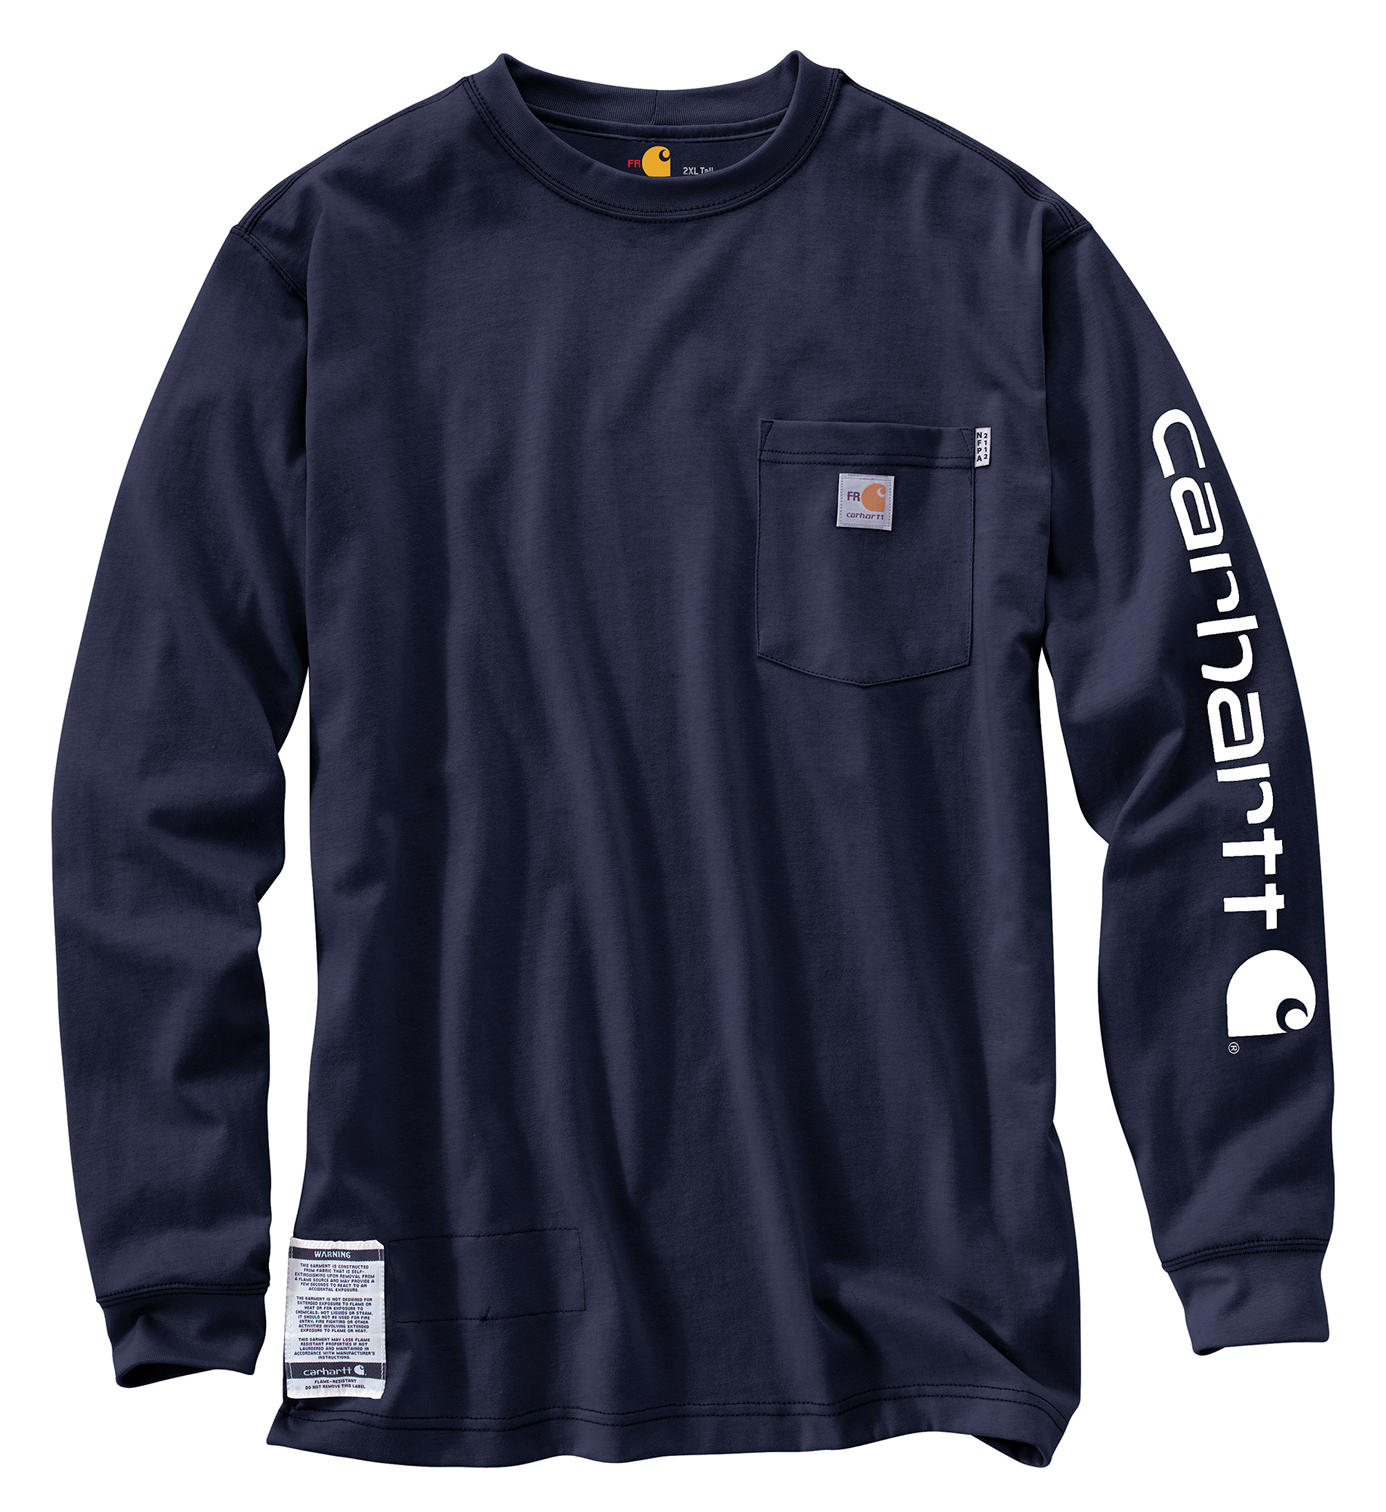 Navy Cotton Flame Resistant Sleeve